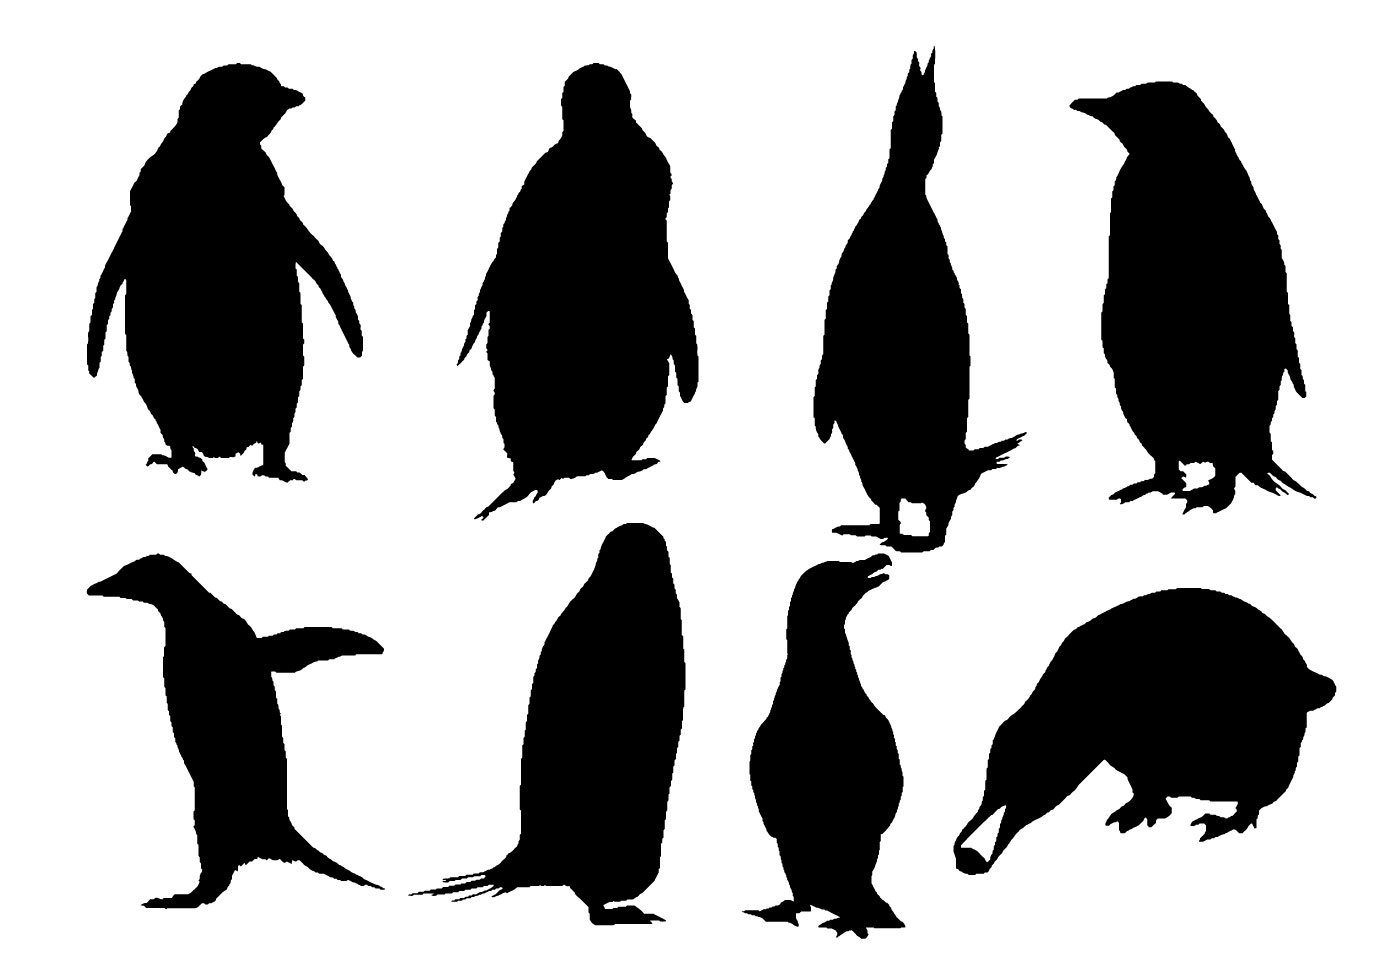 Penguin silhouette clip art at getdrawings free for personal 1400x980 14 free penguins vector images voltagebd Images